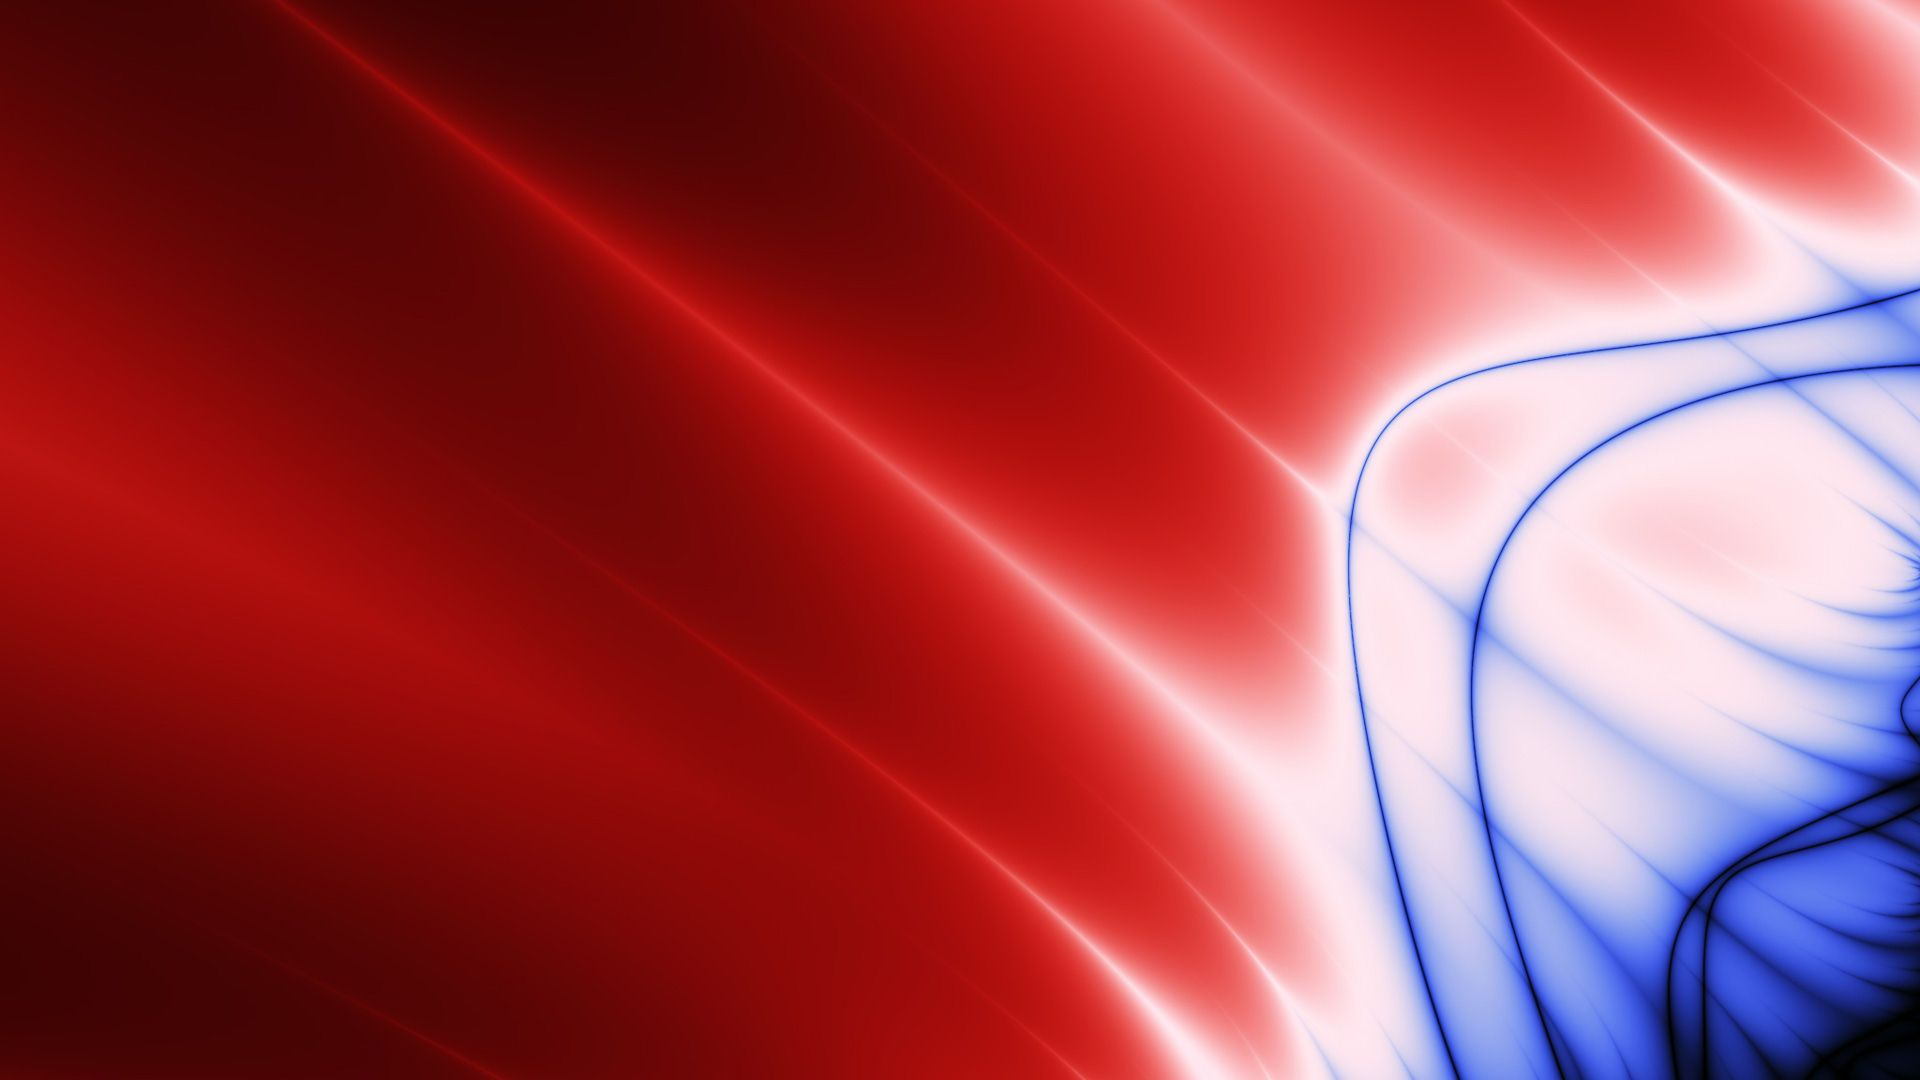 Red And Blue hd wallpaper download